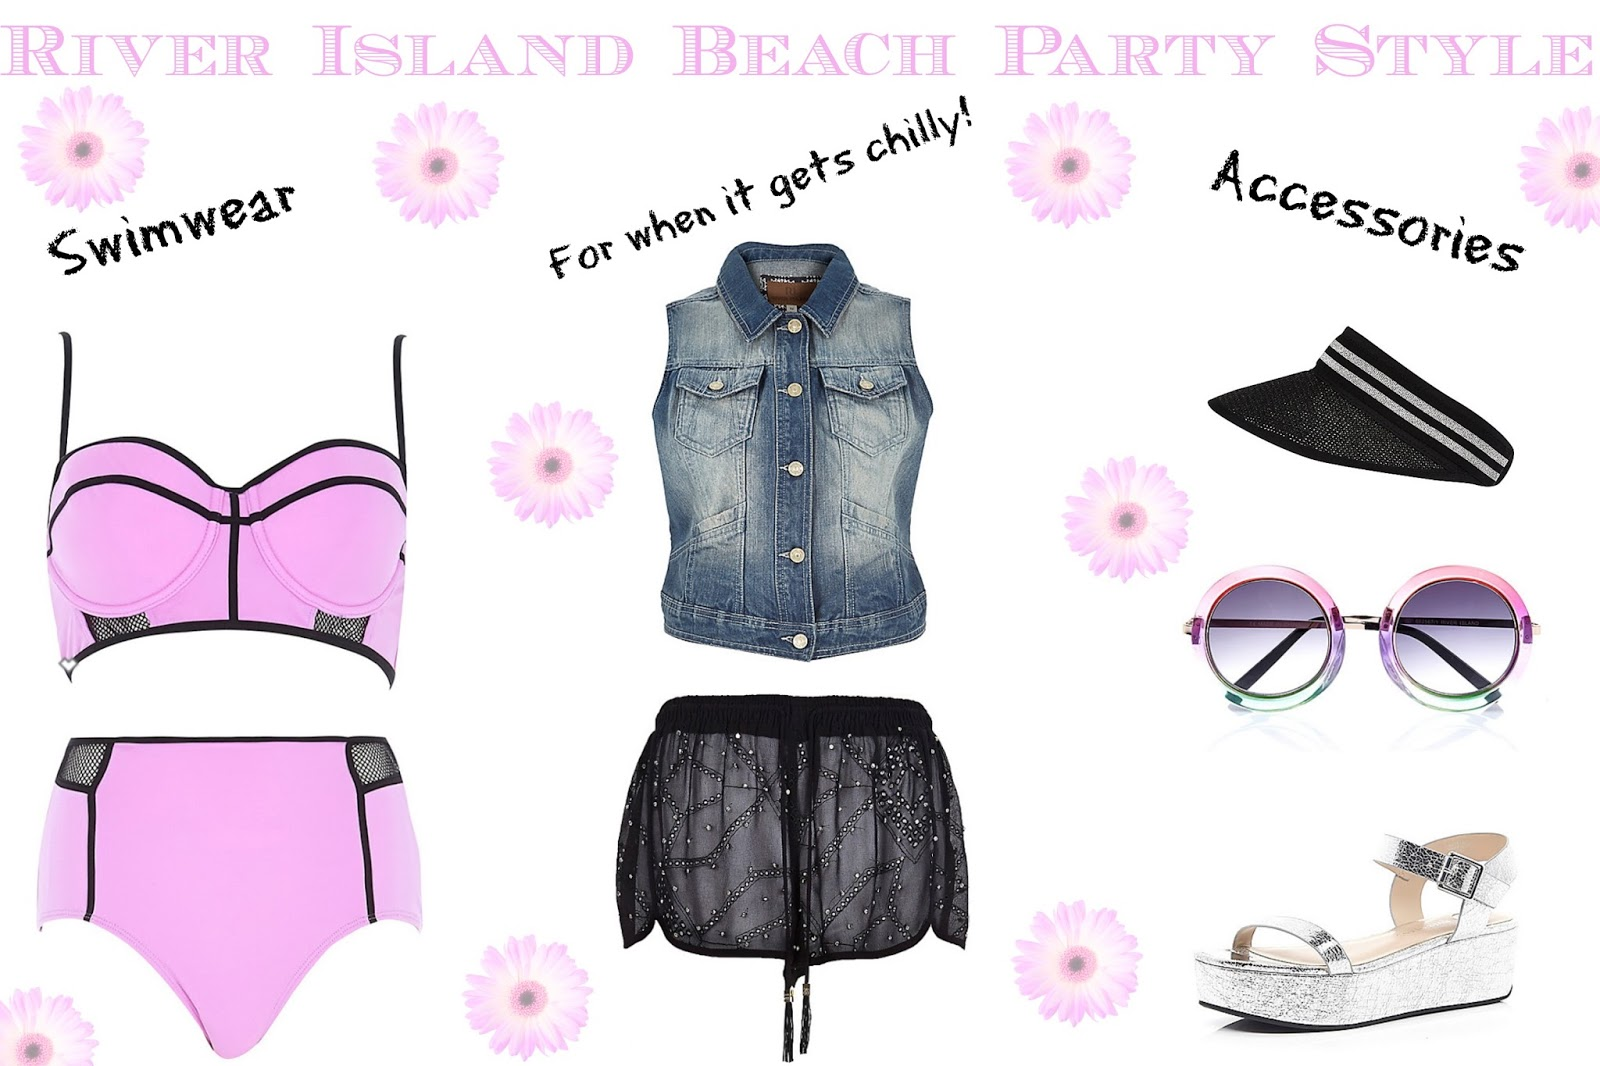 Wishlist on Bec Boop blog of River Island Beach party Style